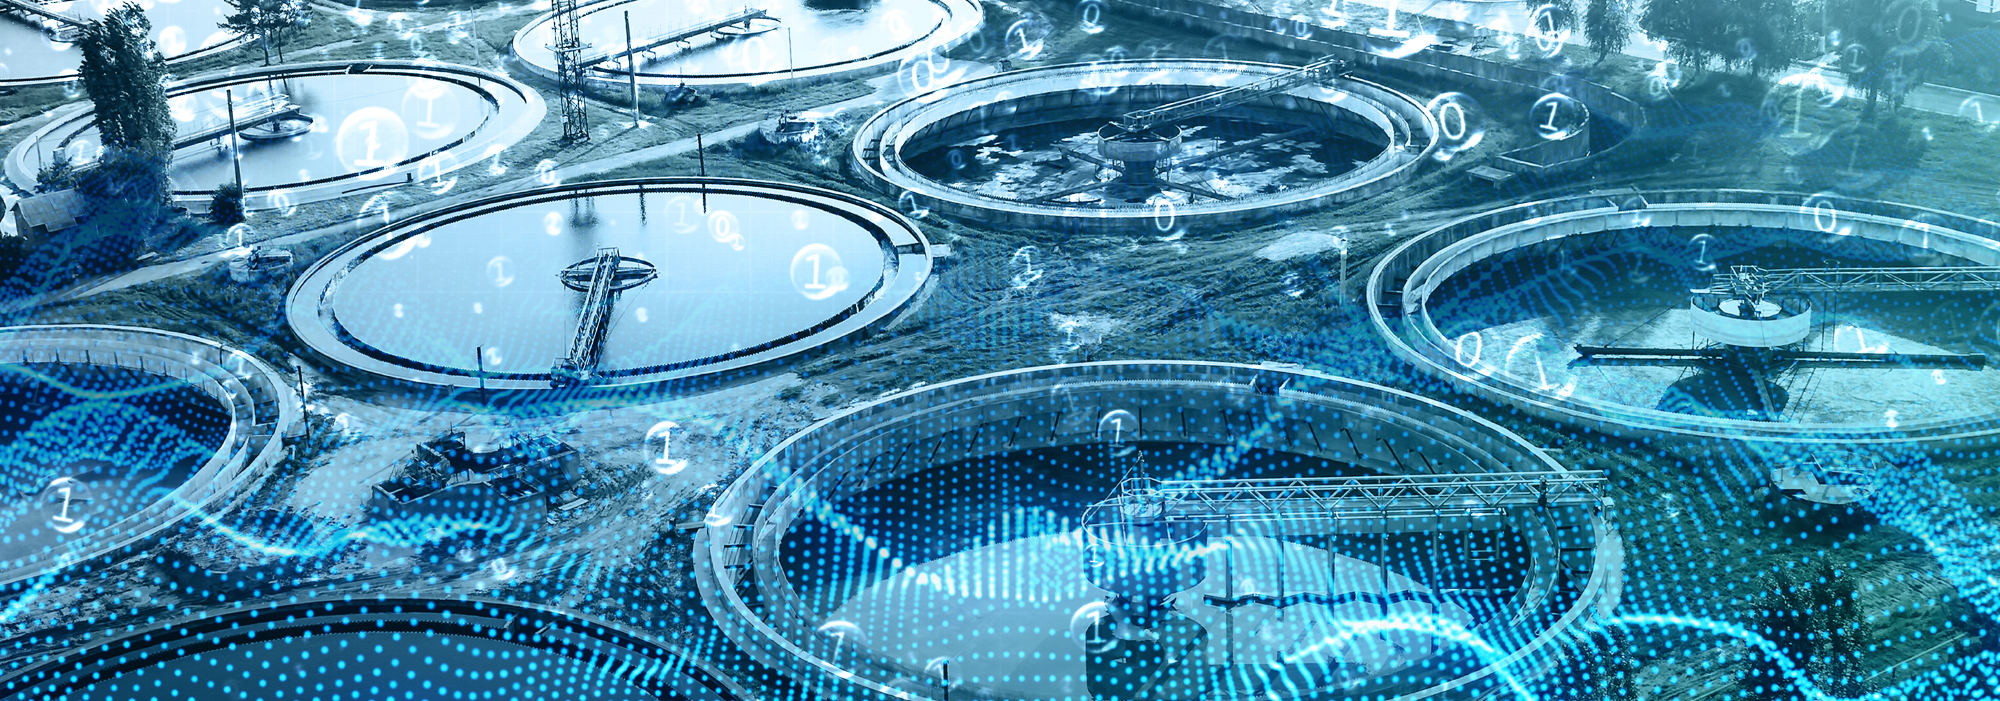 Digital Twins for Wastewater infrastructure